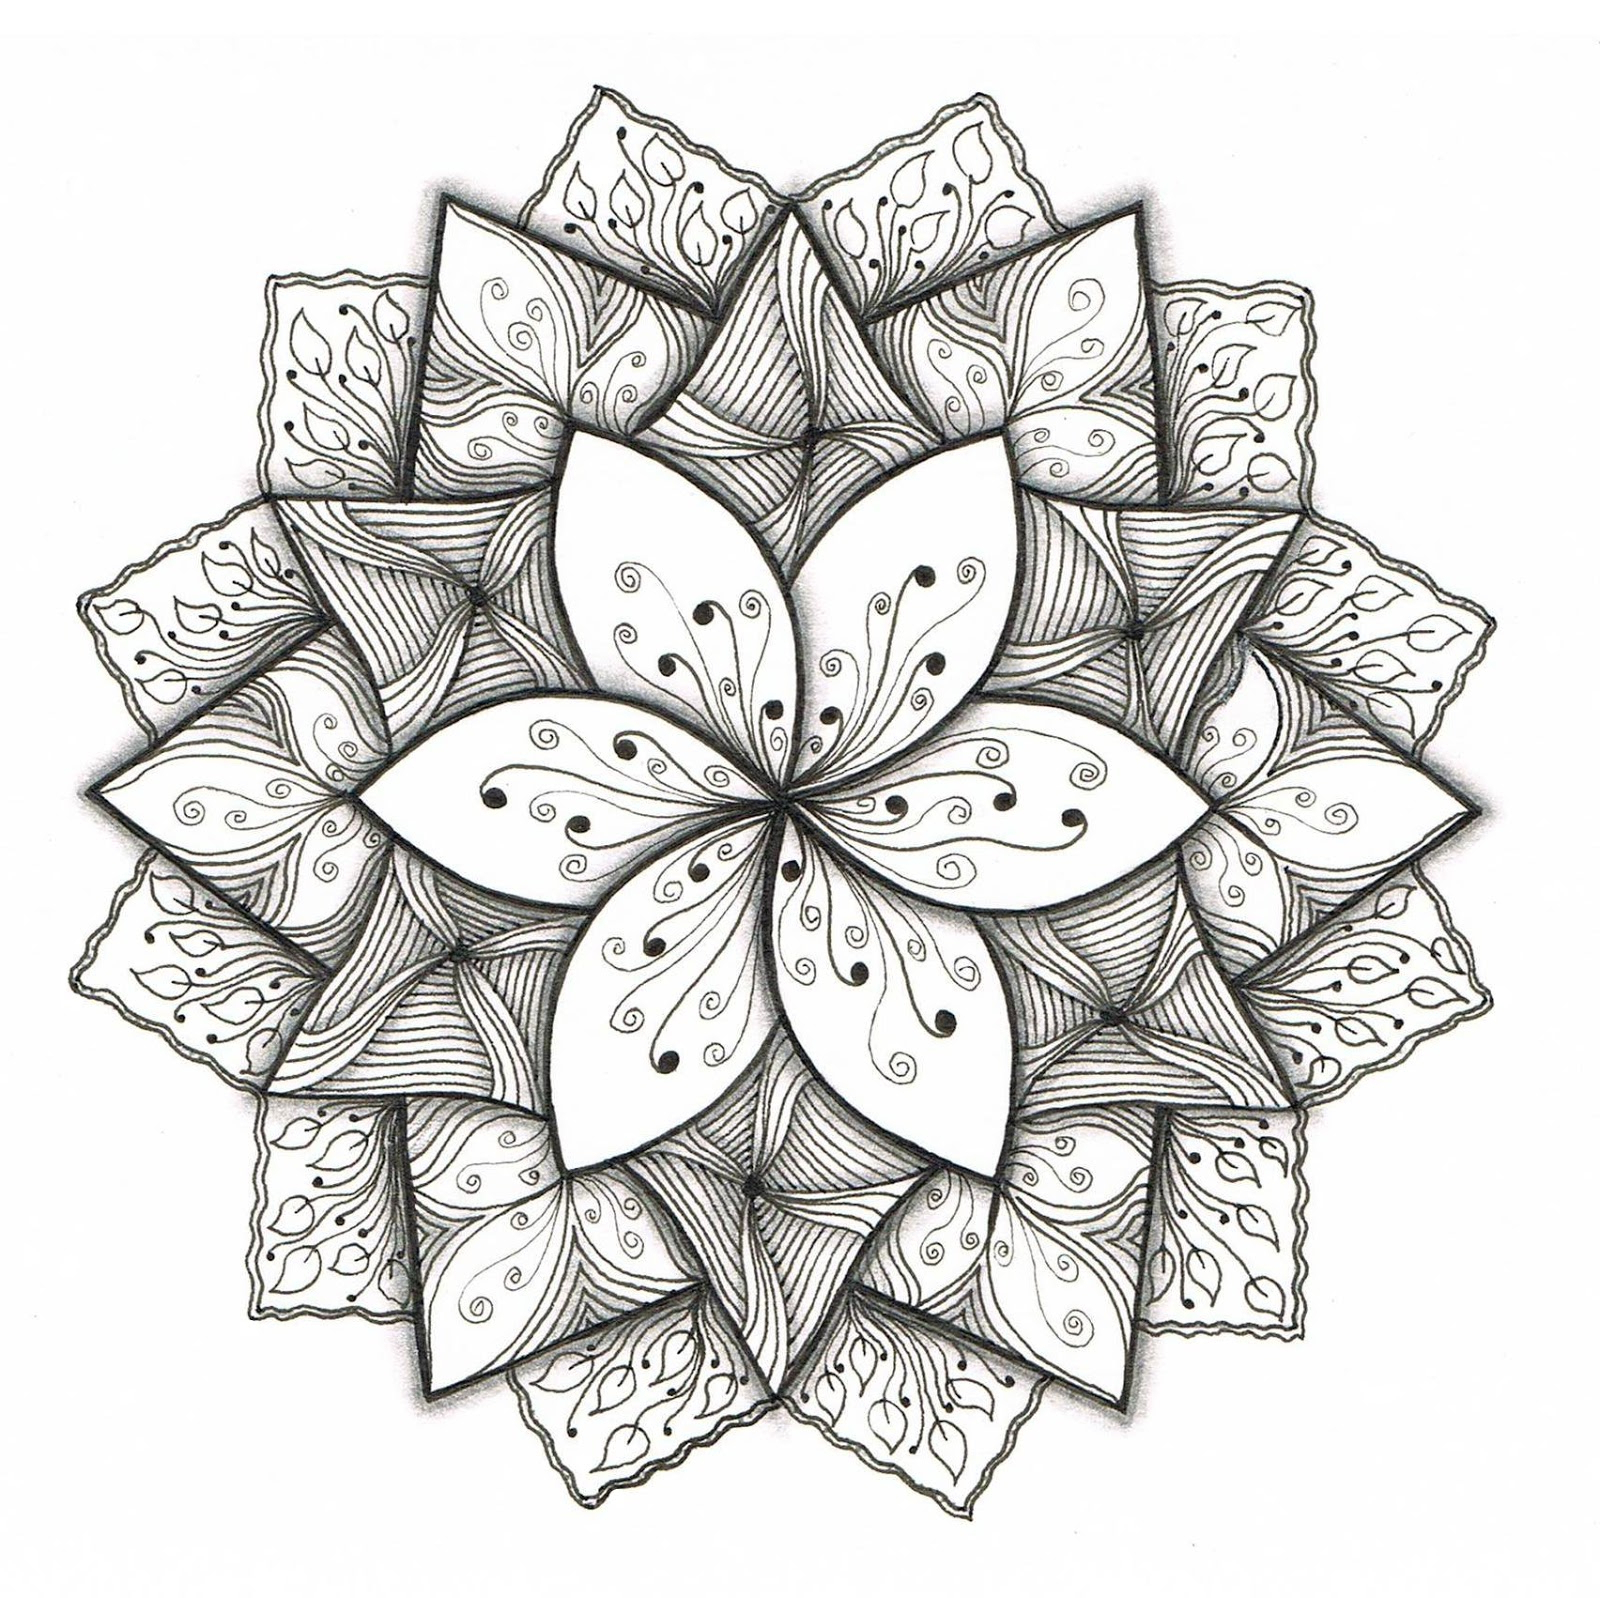 Flower Patterns Drawing At Getdrawings Com Free For